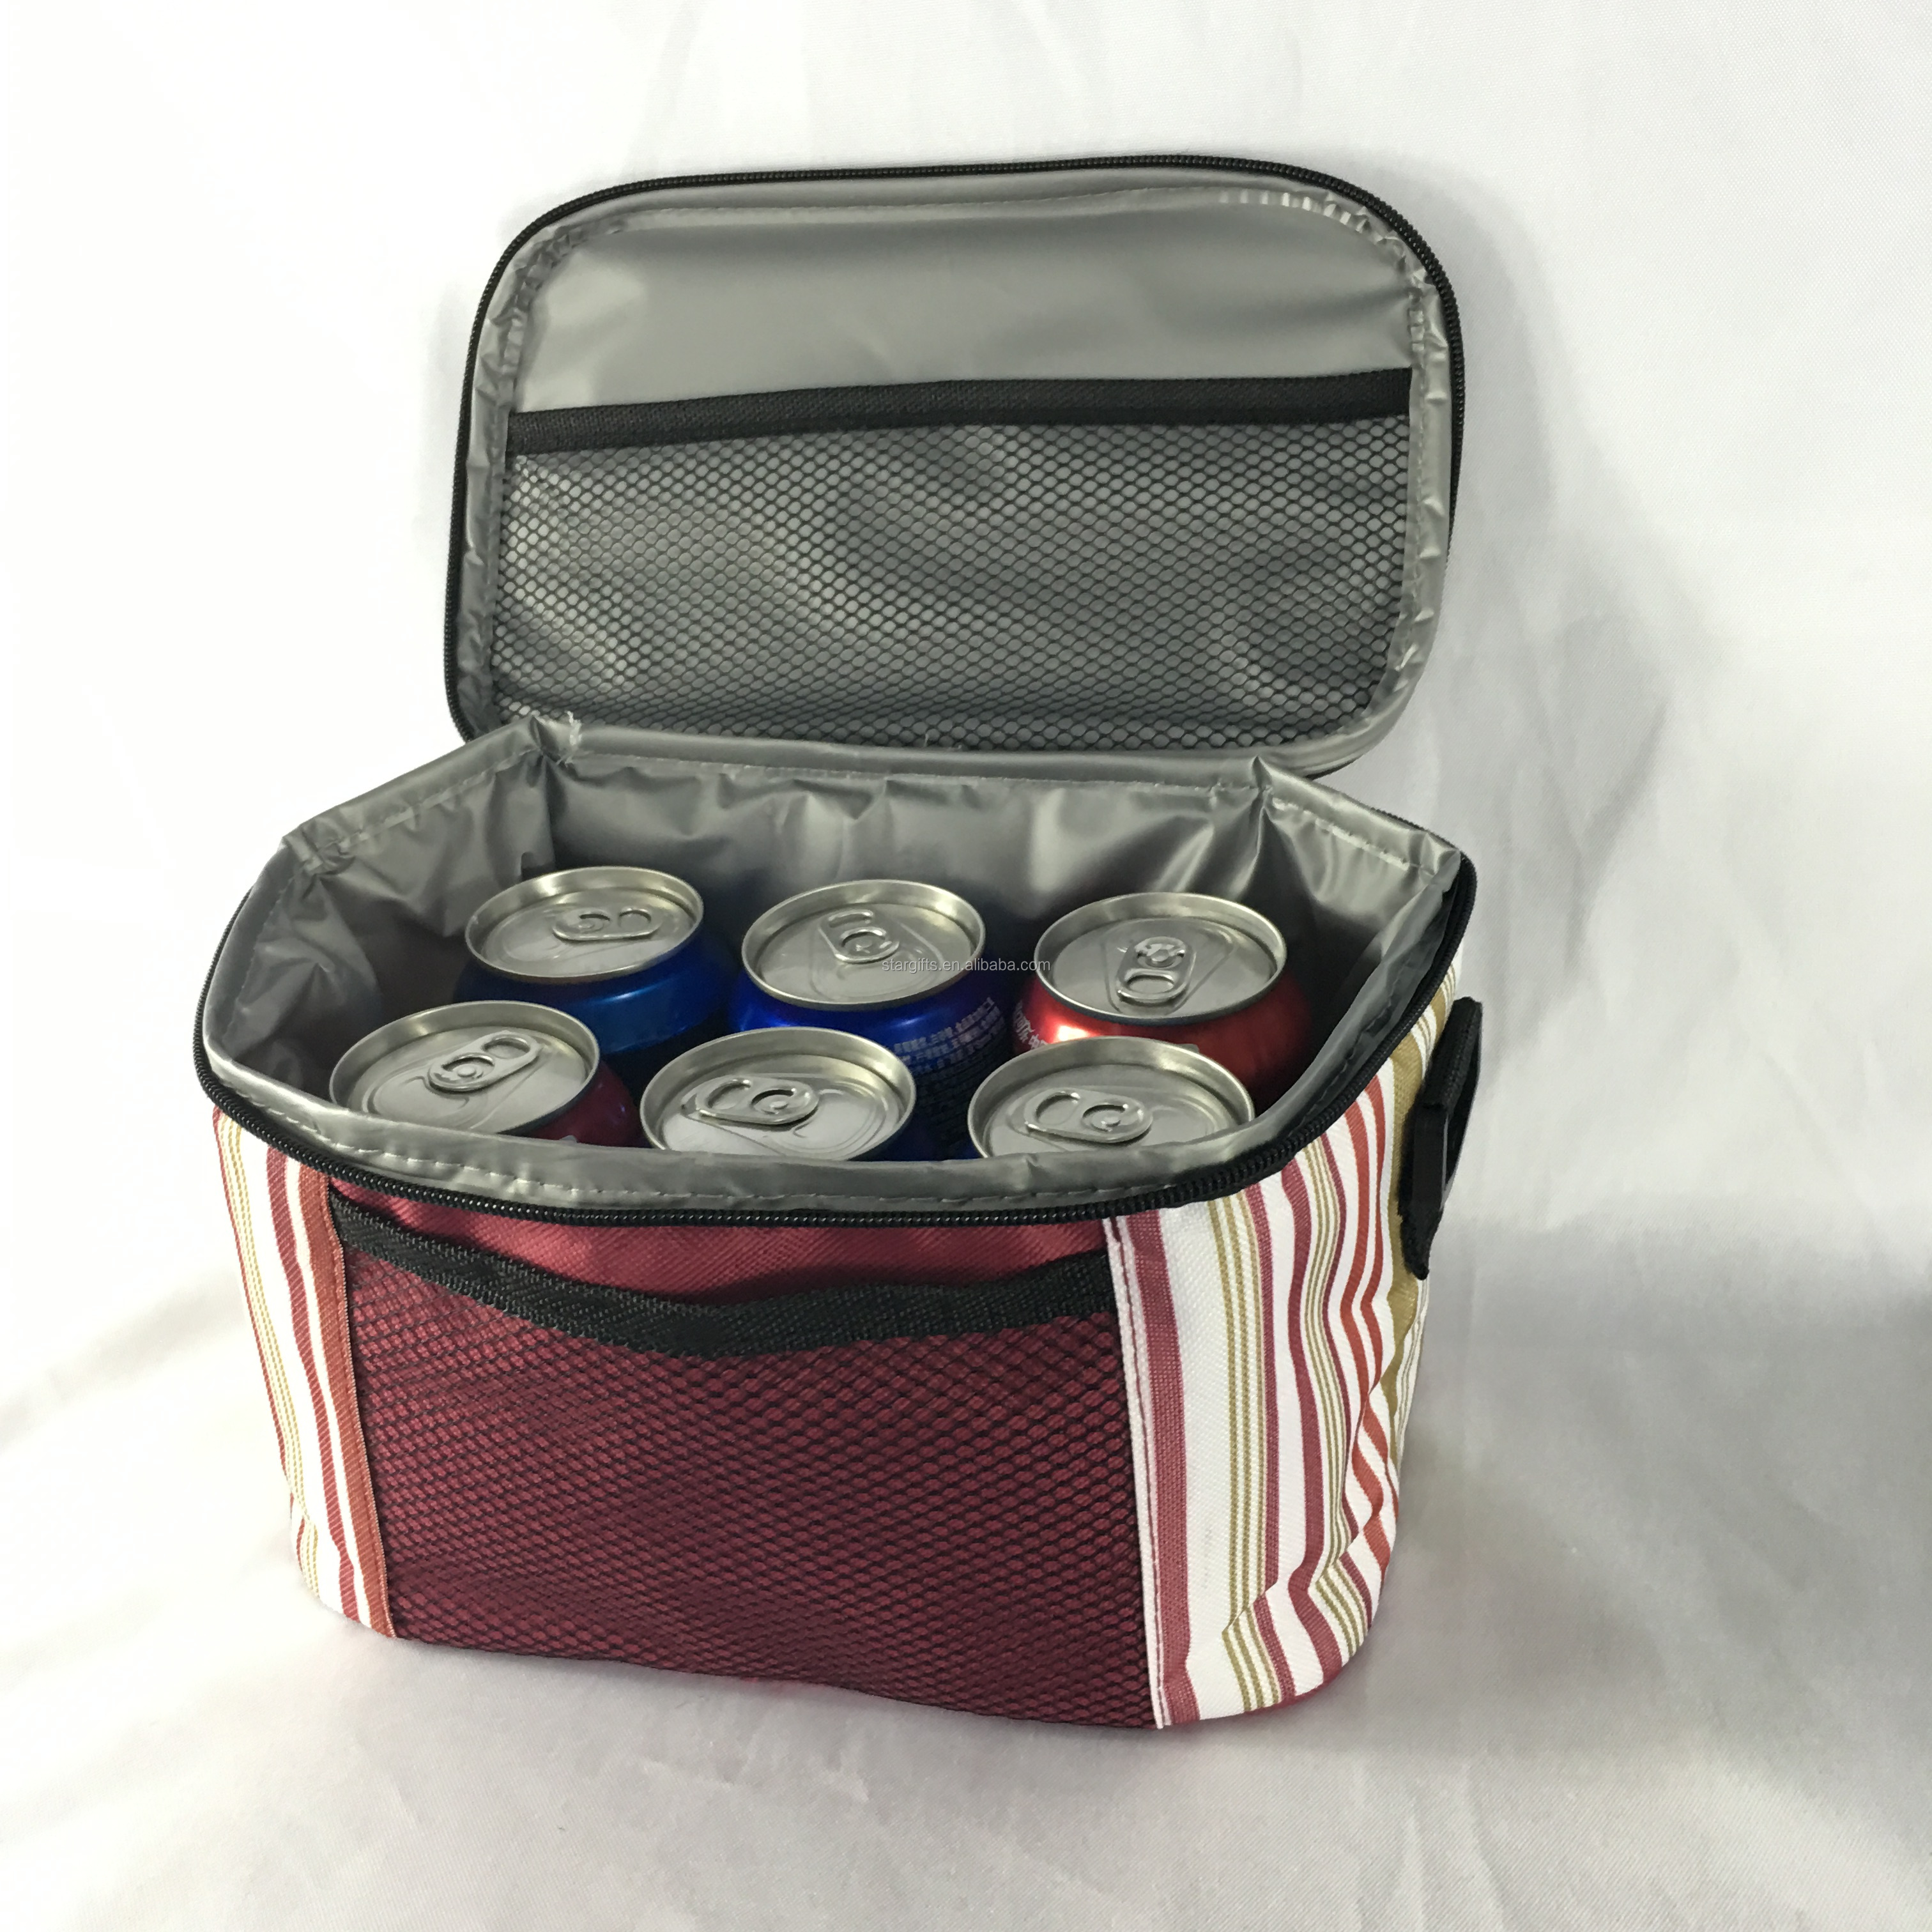 Factory Made Portable Practical Cans Cooler Bags 4 6 Cups Insulated Drinks Beverage Carrier for Milk Tea